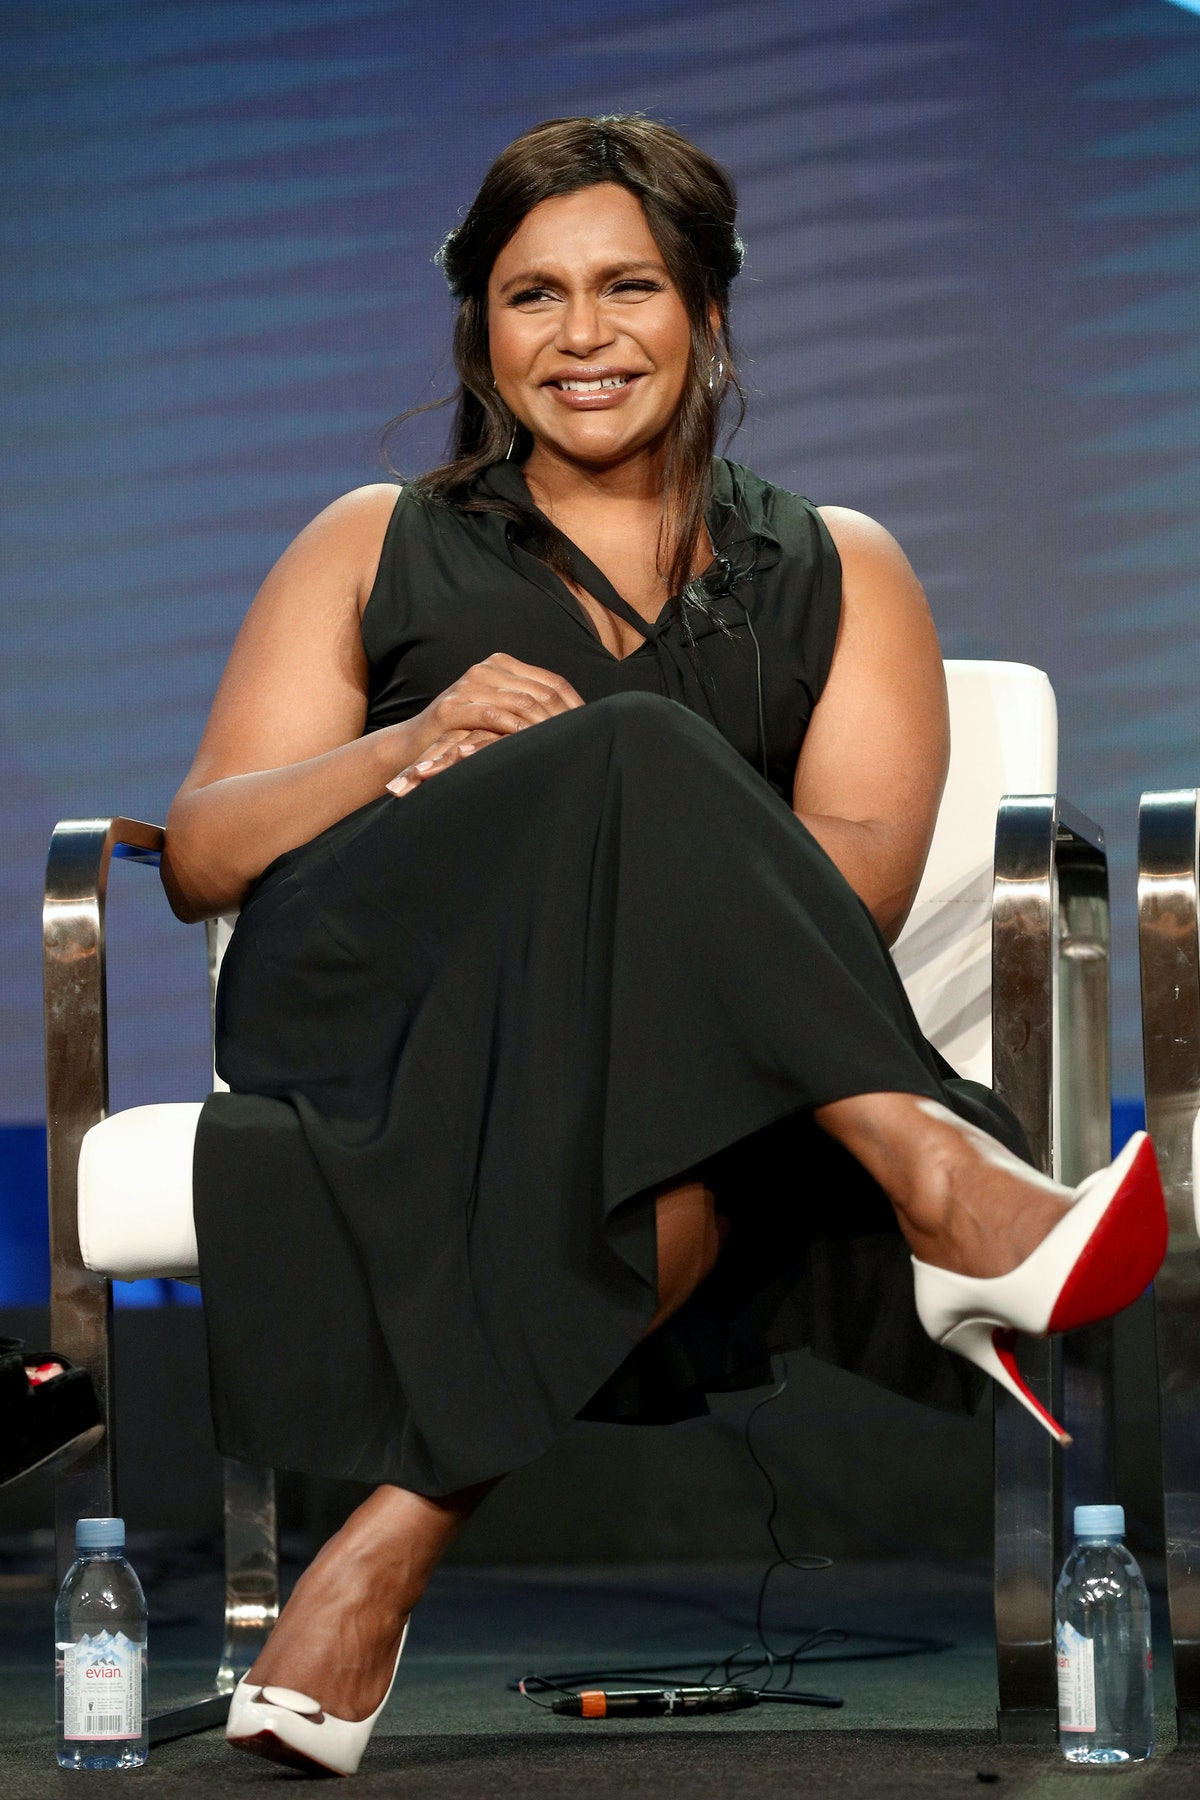 How To Audition For Mindy Kaling's New Netflix Series & Become The Star Of The Next Great Teen Comedy